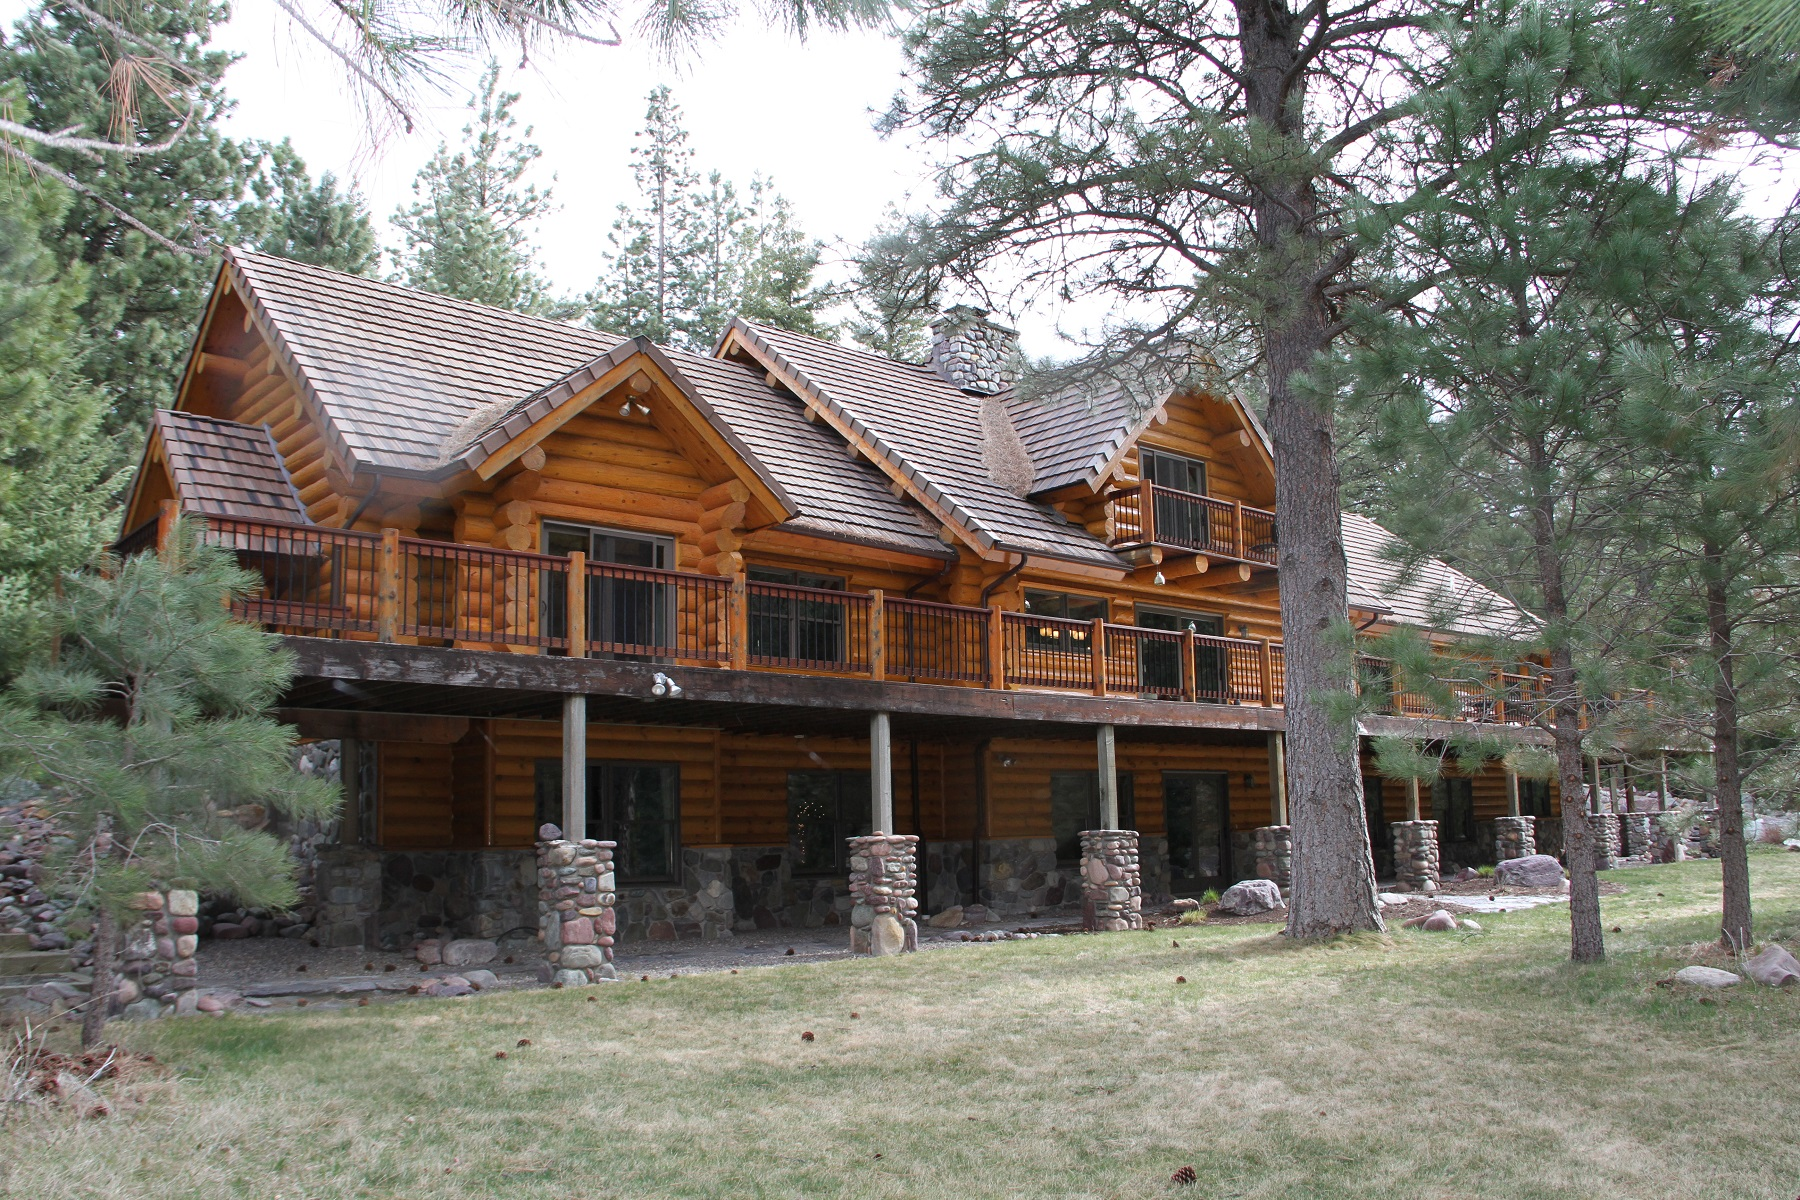 Casa Unifamiliar por un Venta en Blackfoot River Lodge 18465 Highway 200 E Bonner, Montana, 59823 Estados Unidos